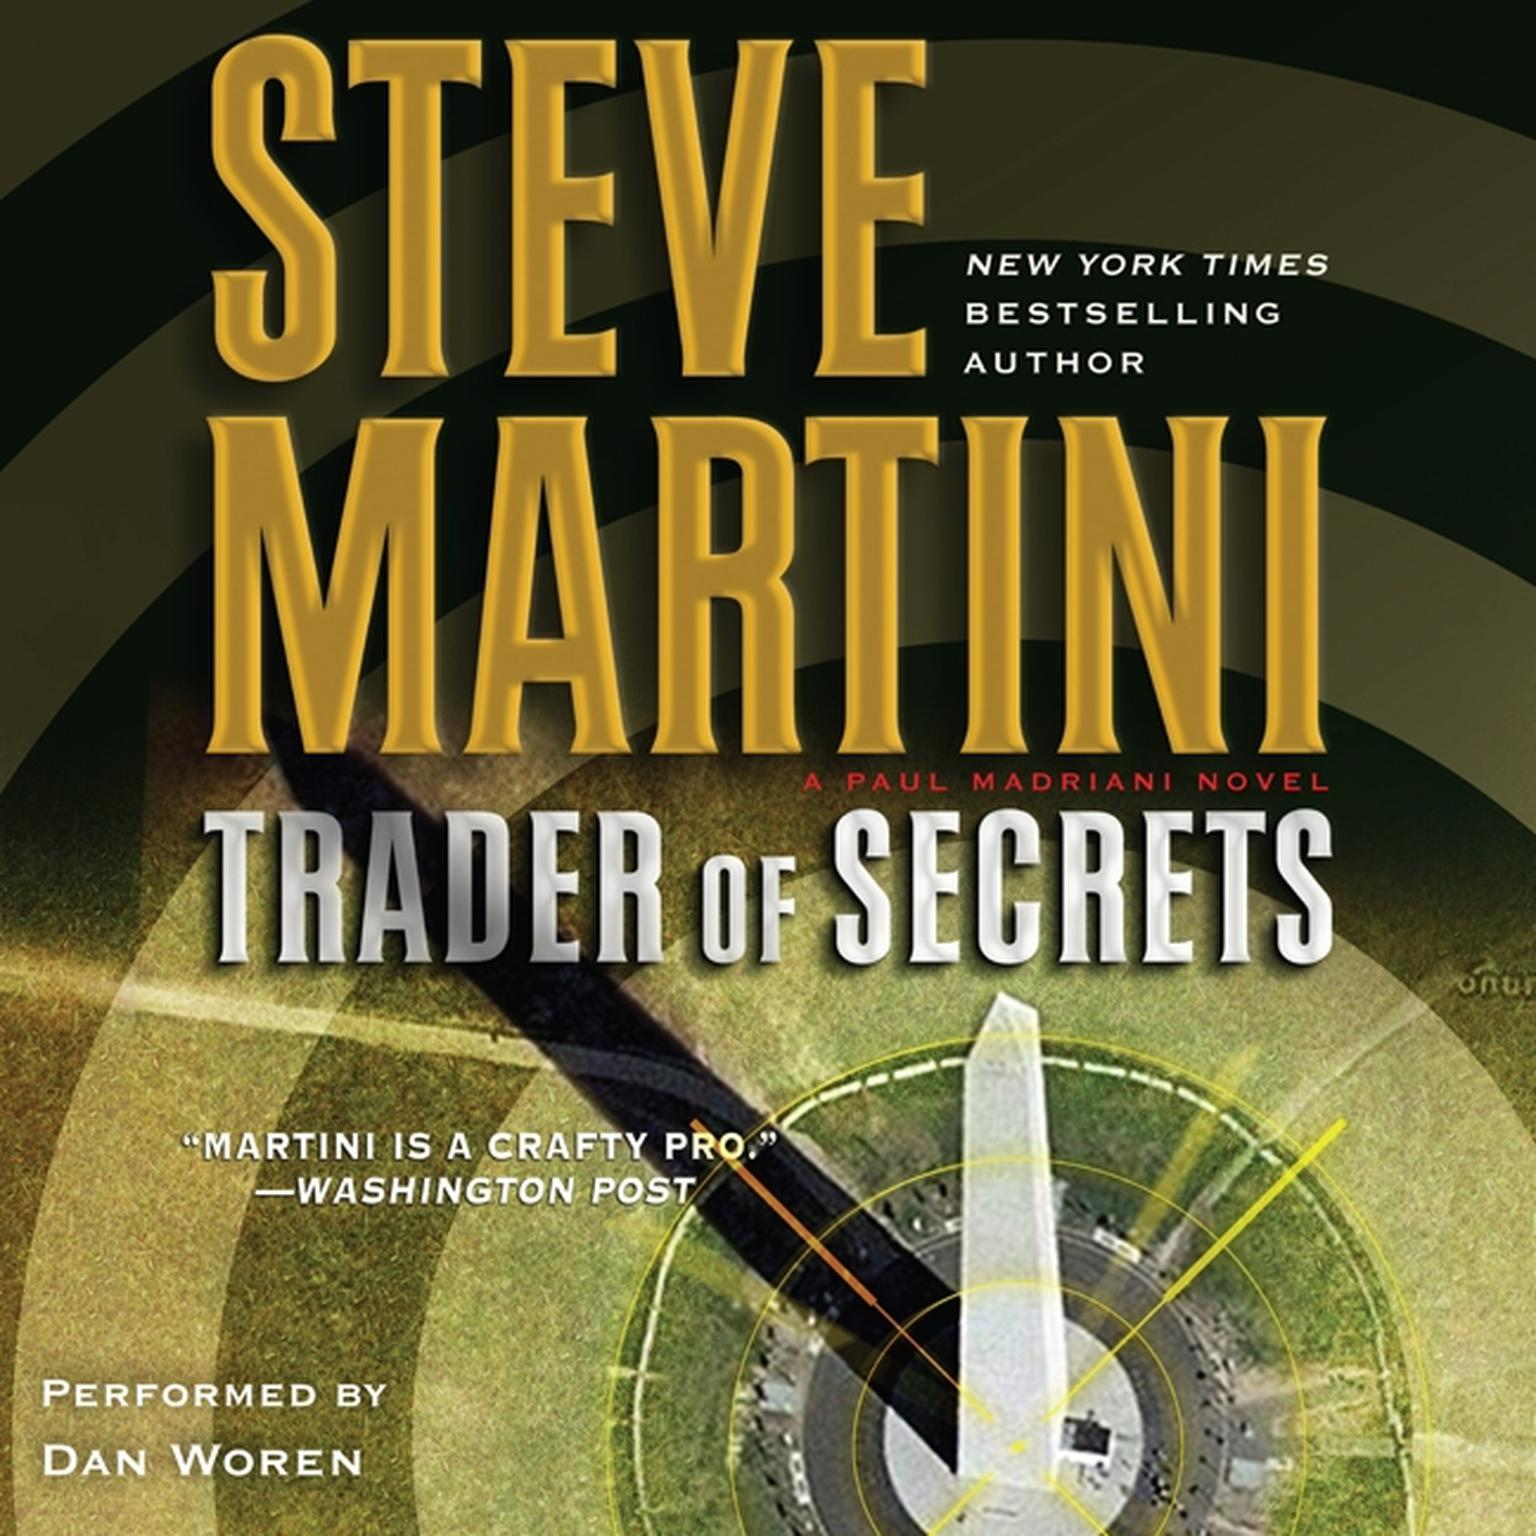 Printable Trader of Secrets: A Paul Madriani Novel Audiobook Cover Art